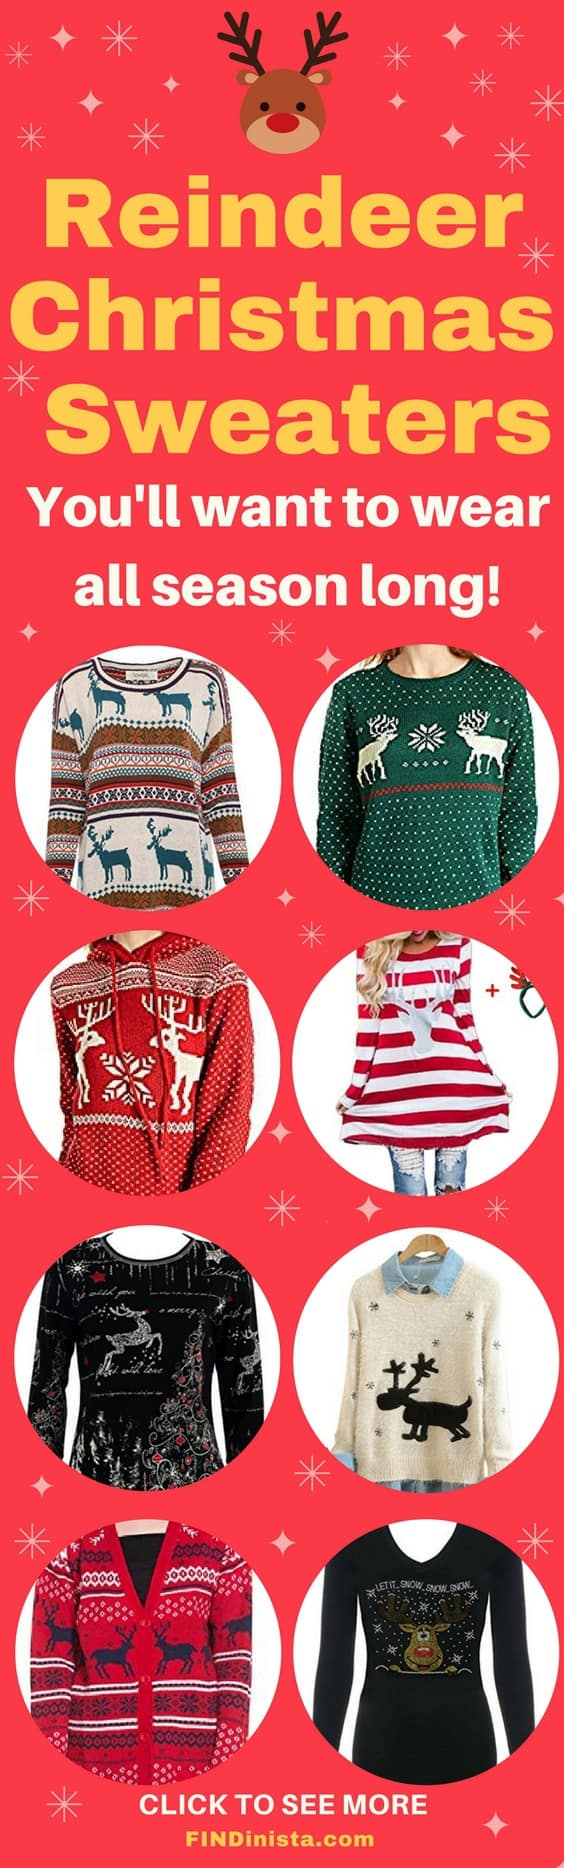 How adorable are these cute reindeer Christmas sweaters for women? Fun and festive - the perfect look for the holidays. Click to see a fabulous selection of cute Christmas sweaters. #ChristmasFashion